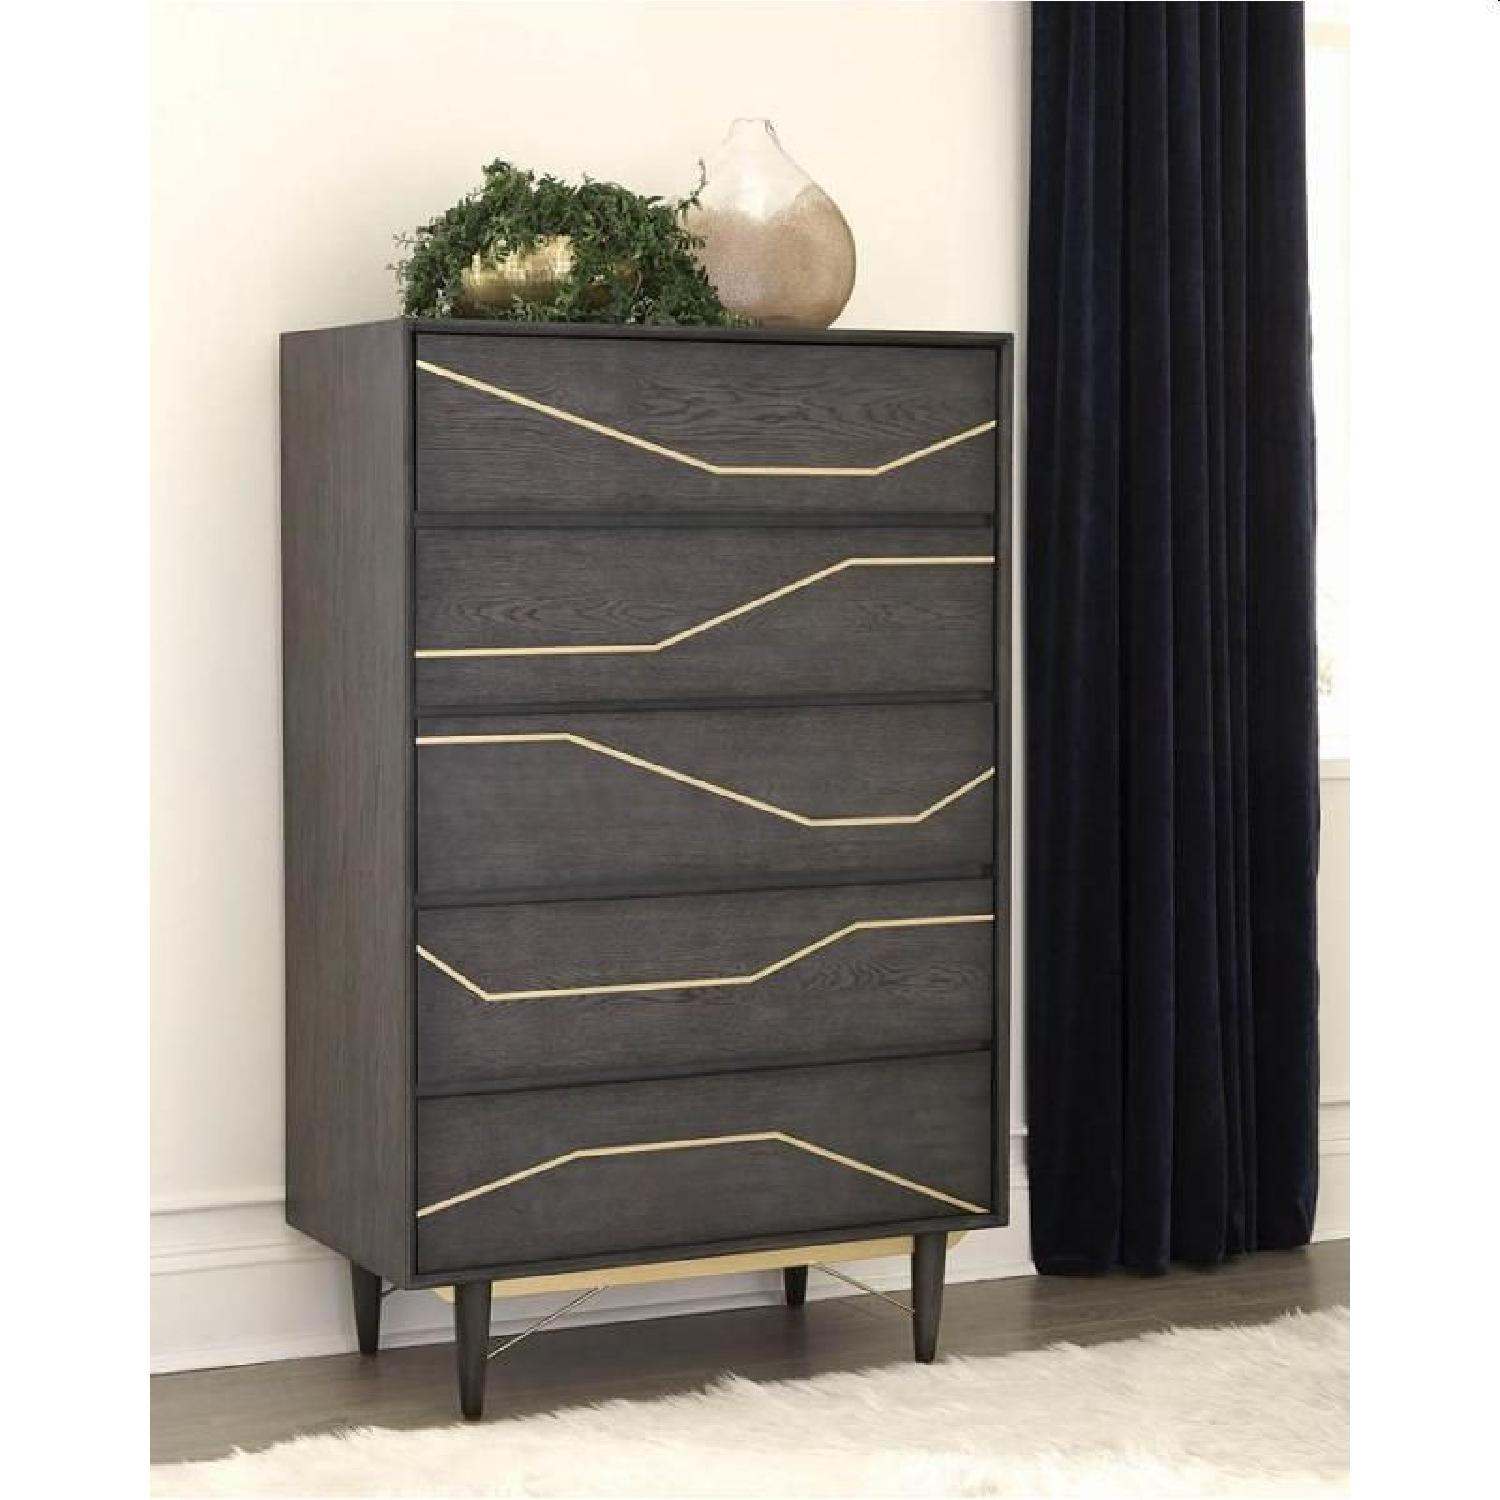 Modern Chest in Graphite Finish w/ Gold Color Inlay - image-2